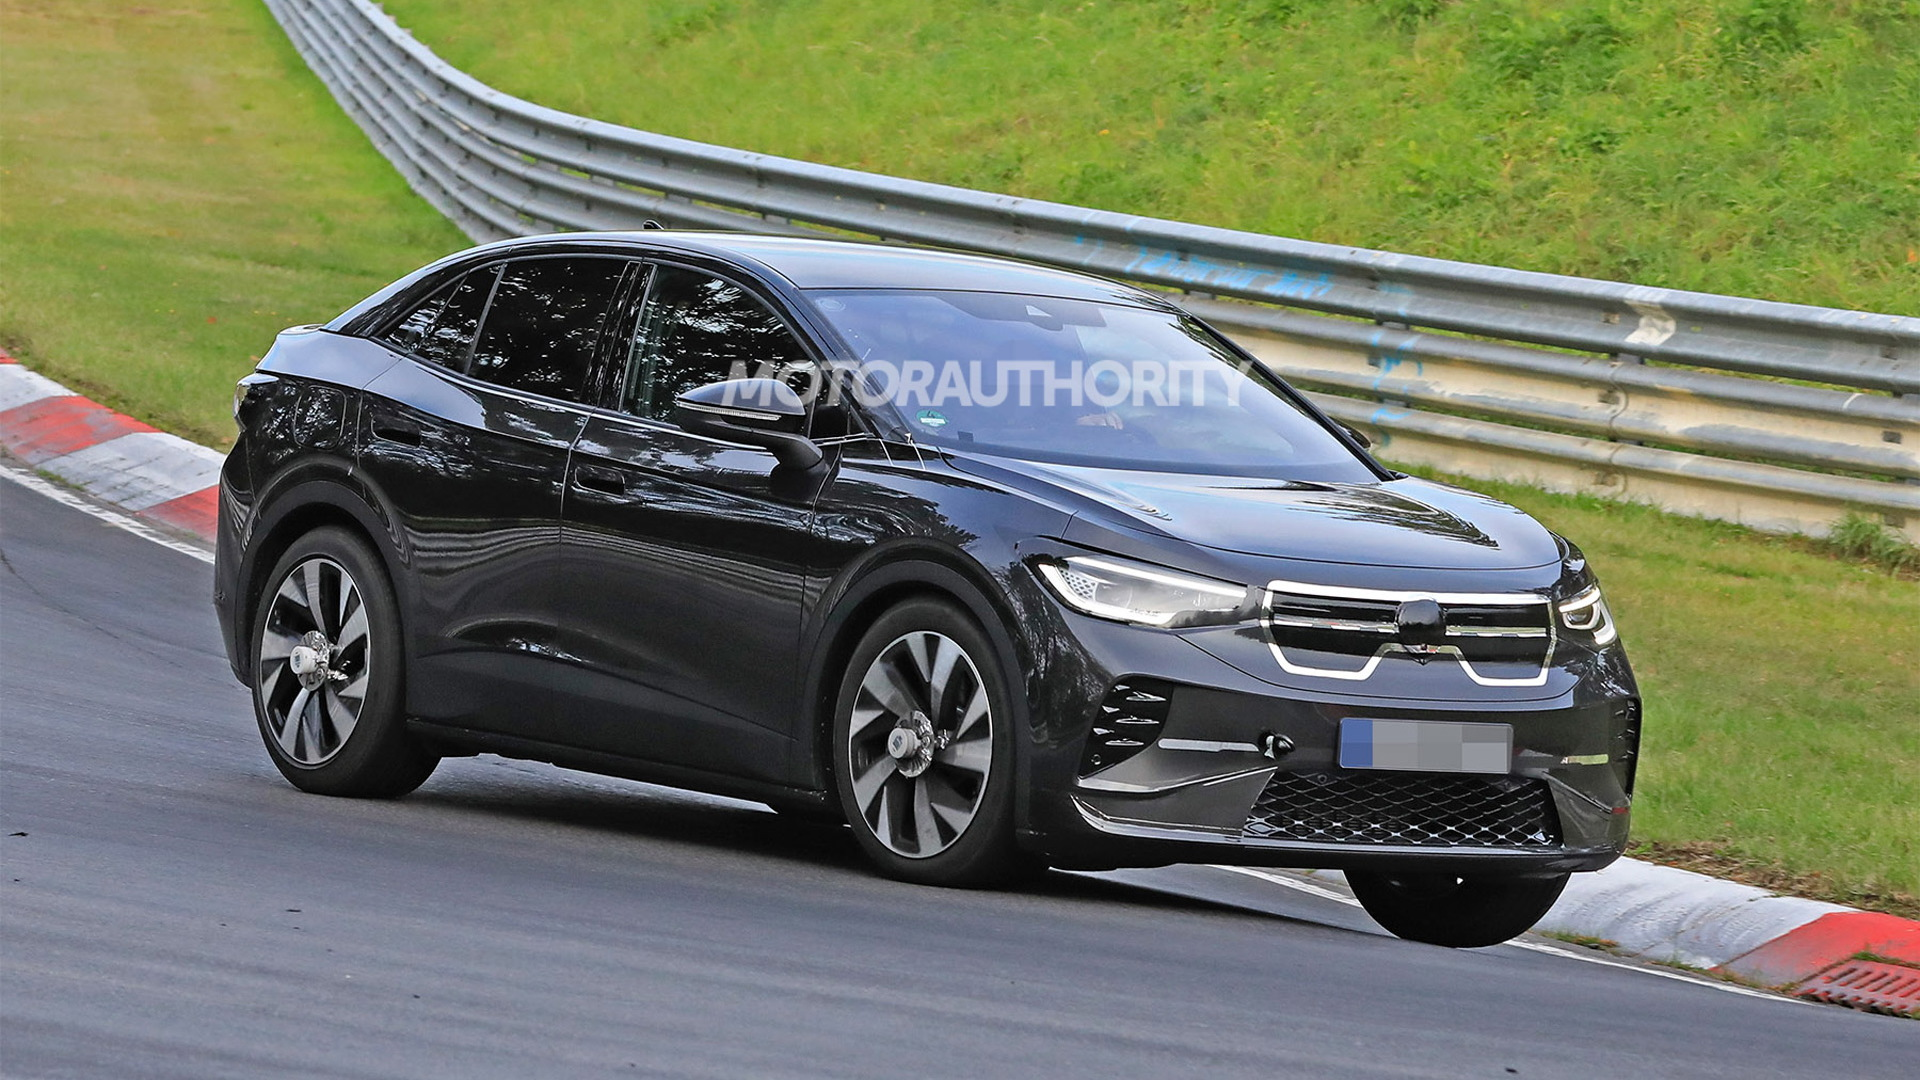 2022 Volkswagen ID.4 coupe spy shots - Photo credit: S. Baldauf/SB-Medien